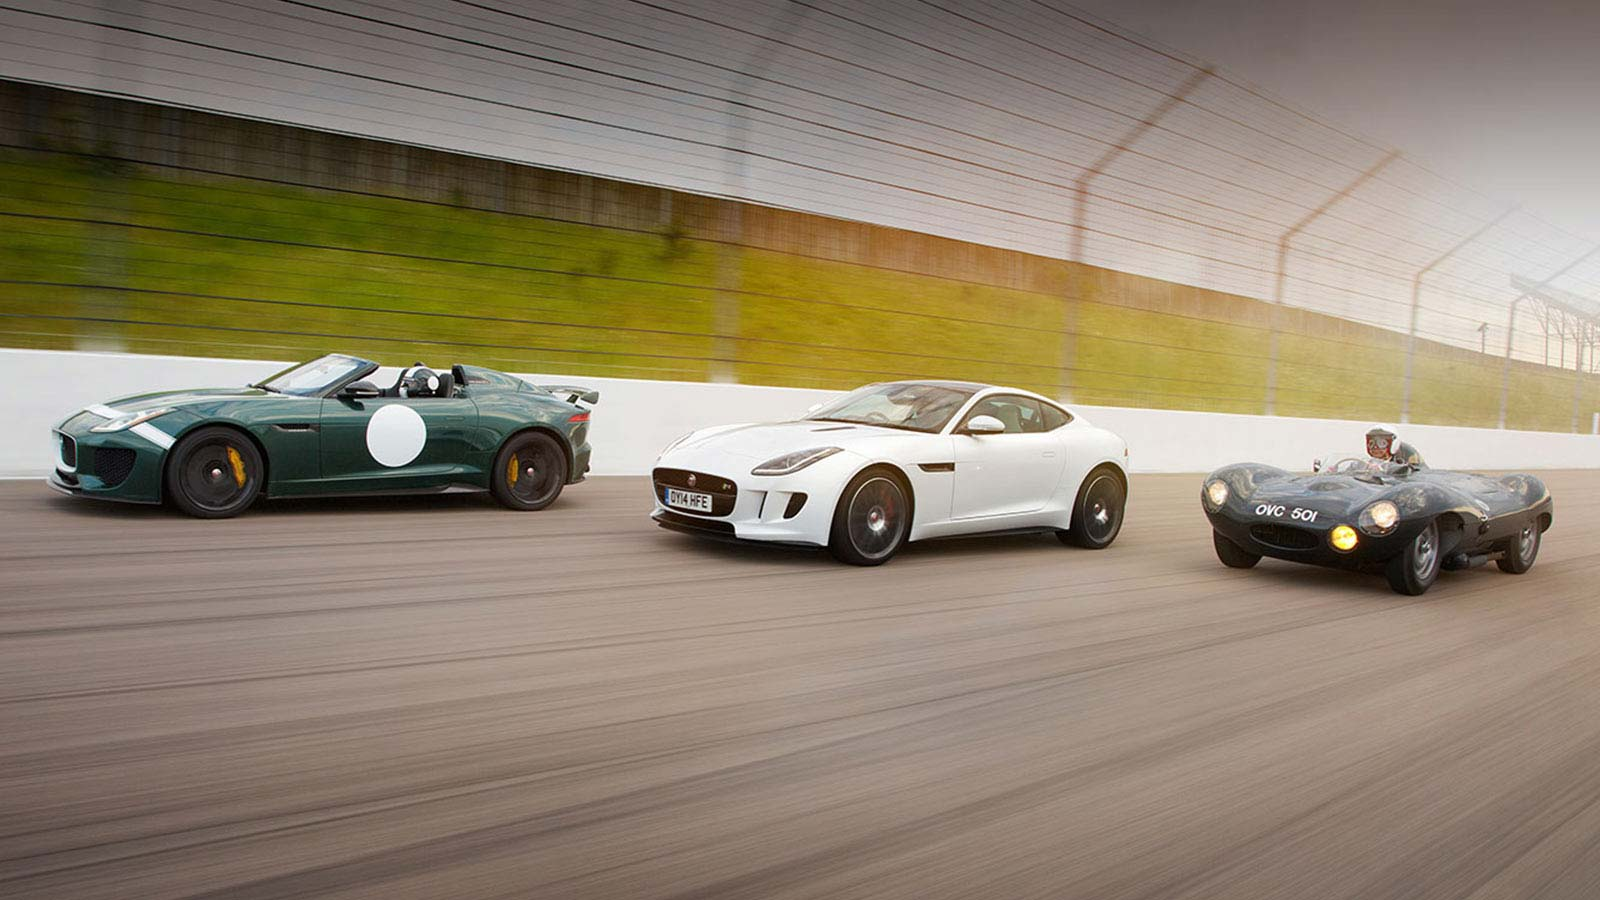 Jaguar F-TYPE Project 7 is joined on the race track by another F-TYPE and a classic D-TYPE.